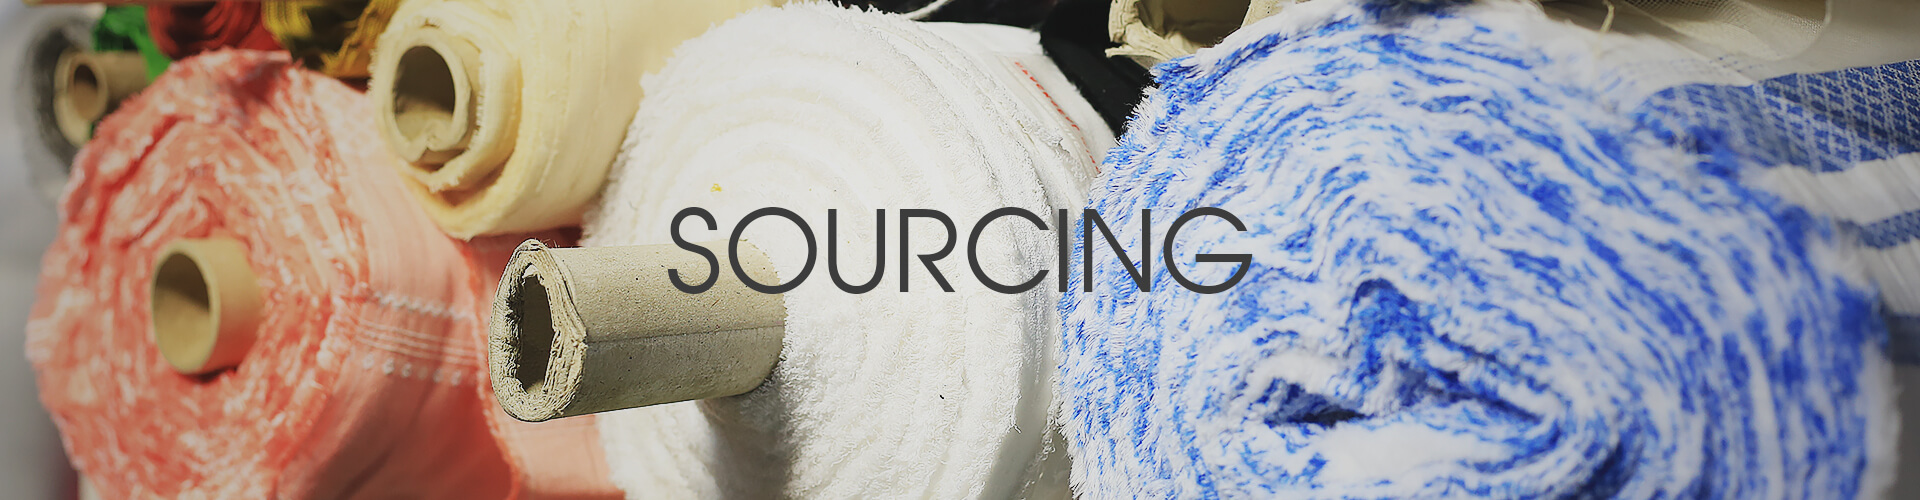 sourcing 1